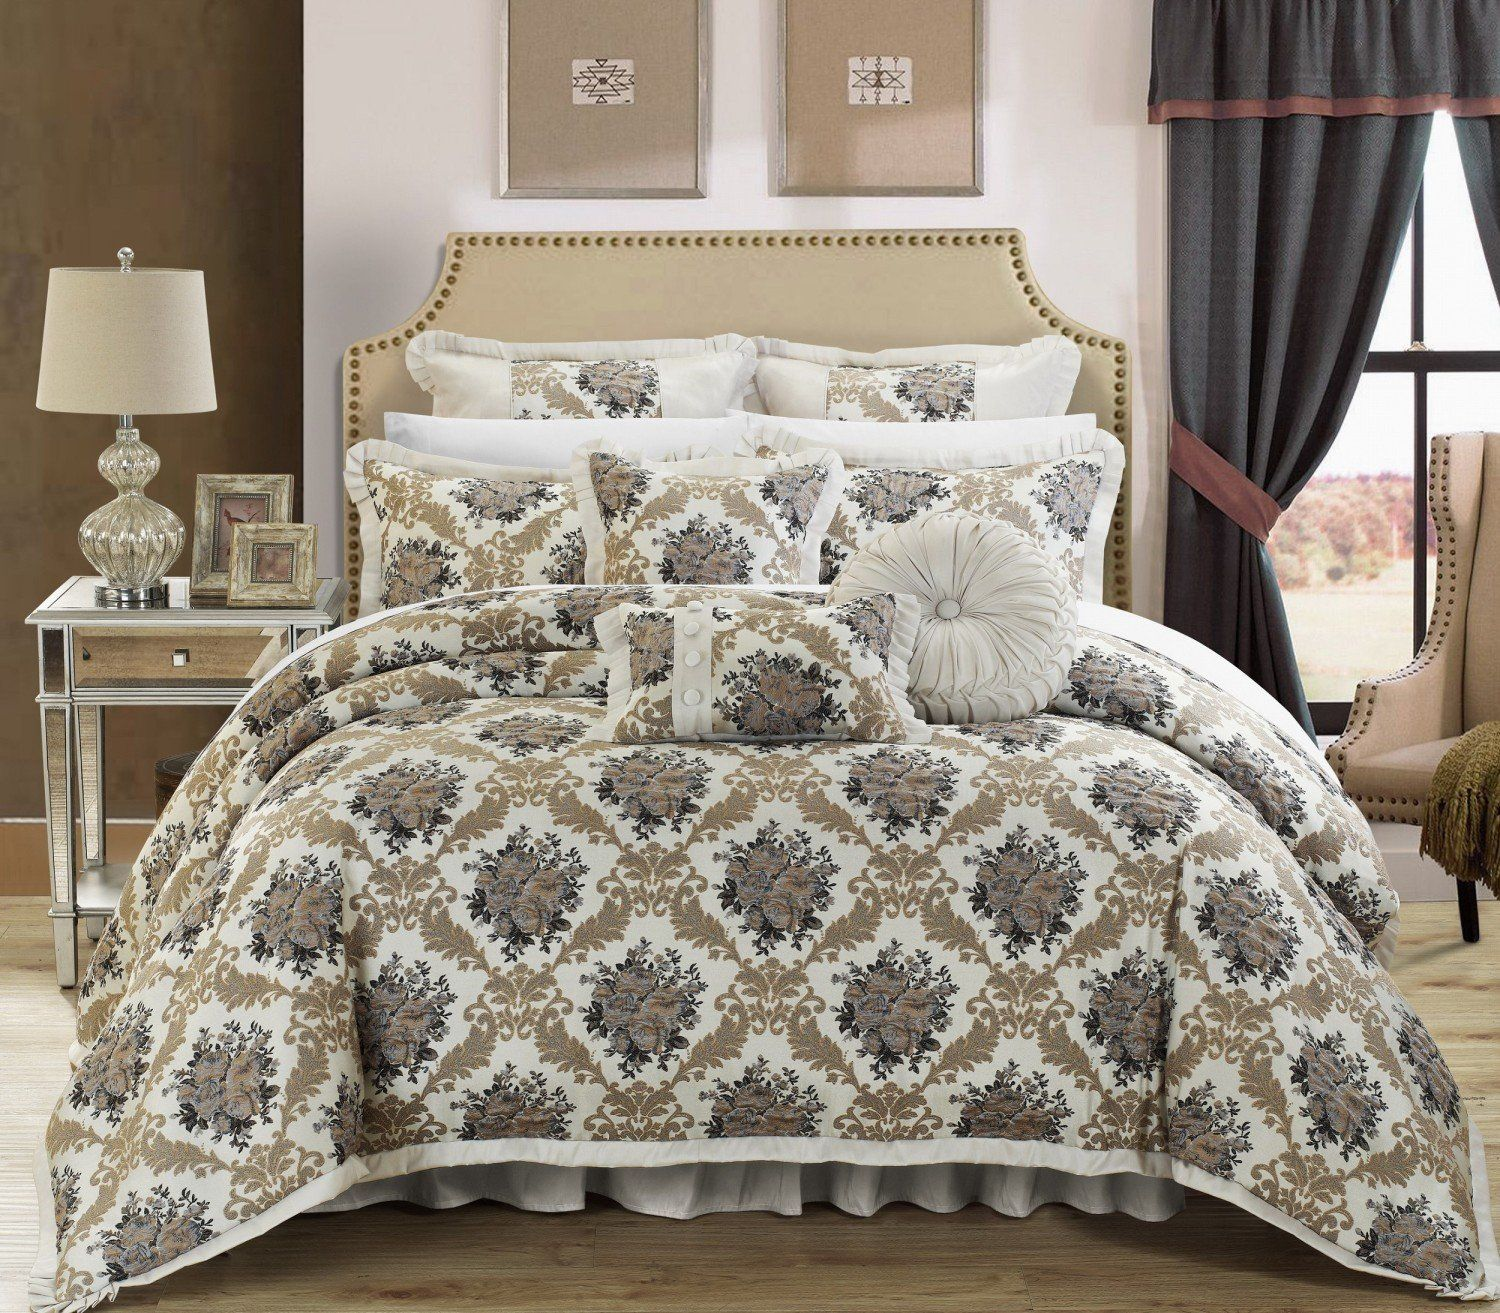 zanotti silver today product bath shipping home comforter overstock floral piece bedding fabric set free chic jacquard